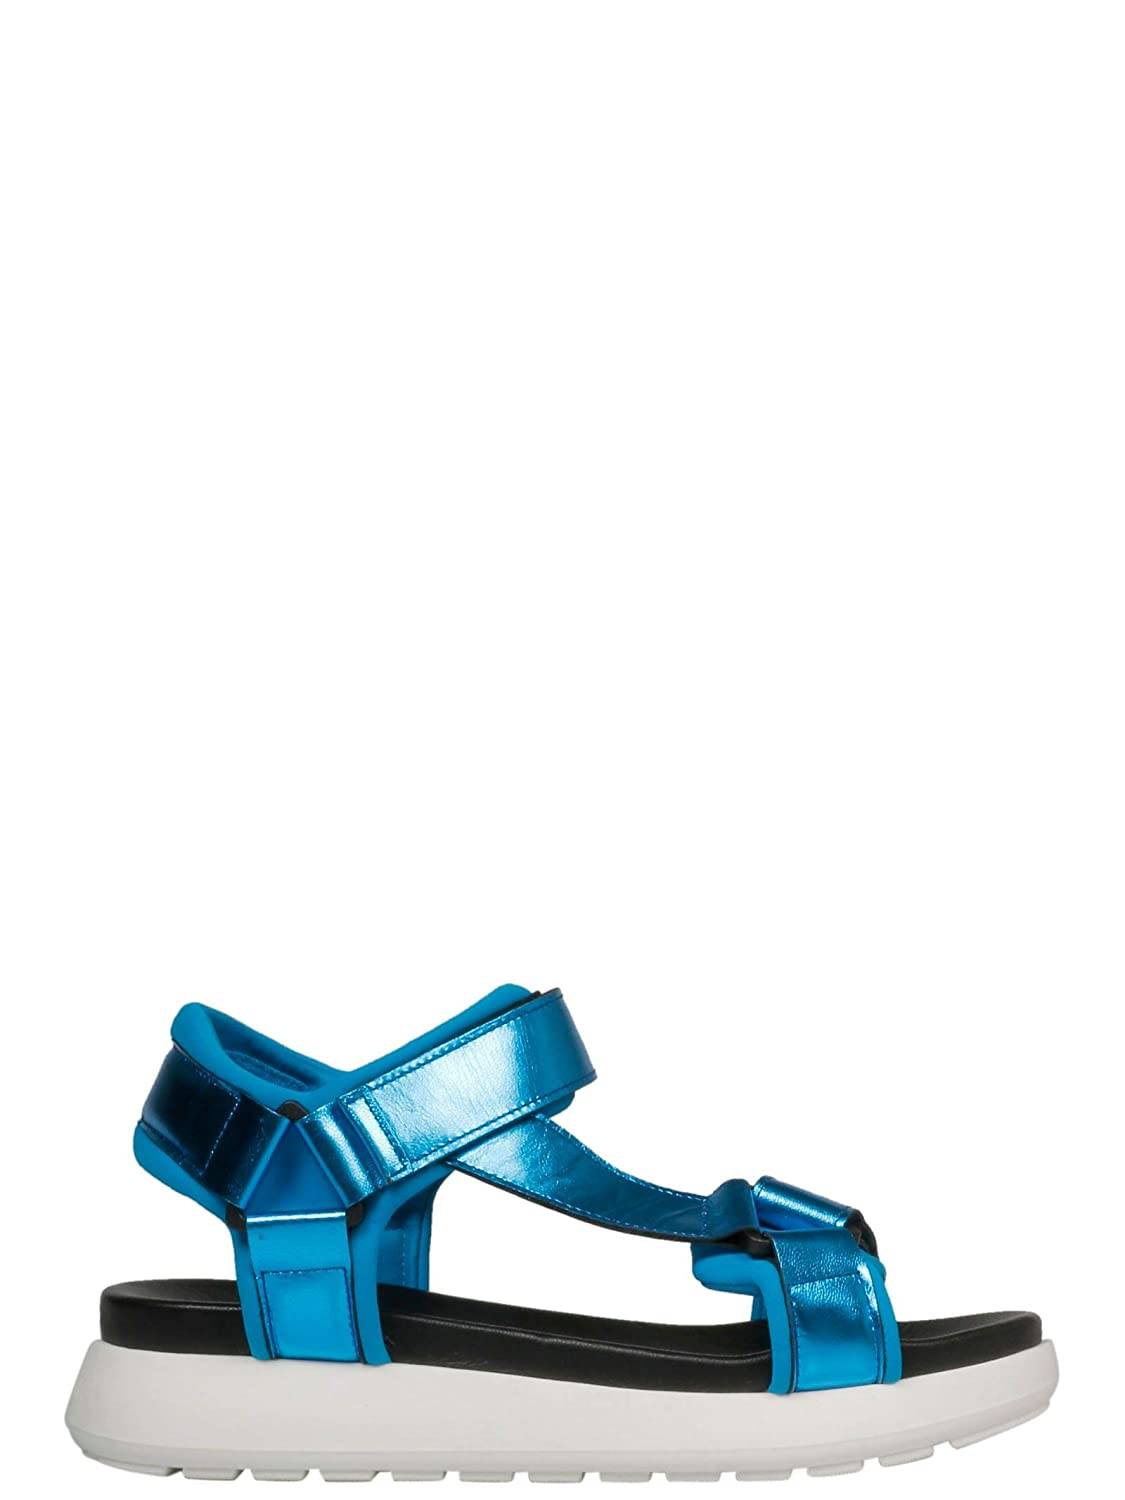 - P.A.R.O.S.H. Women's D070109011 bluee Synthetic Fibers Sandals